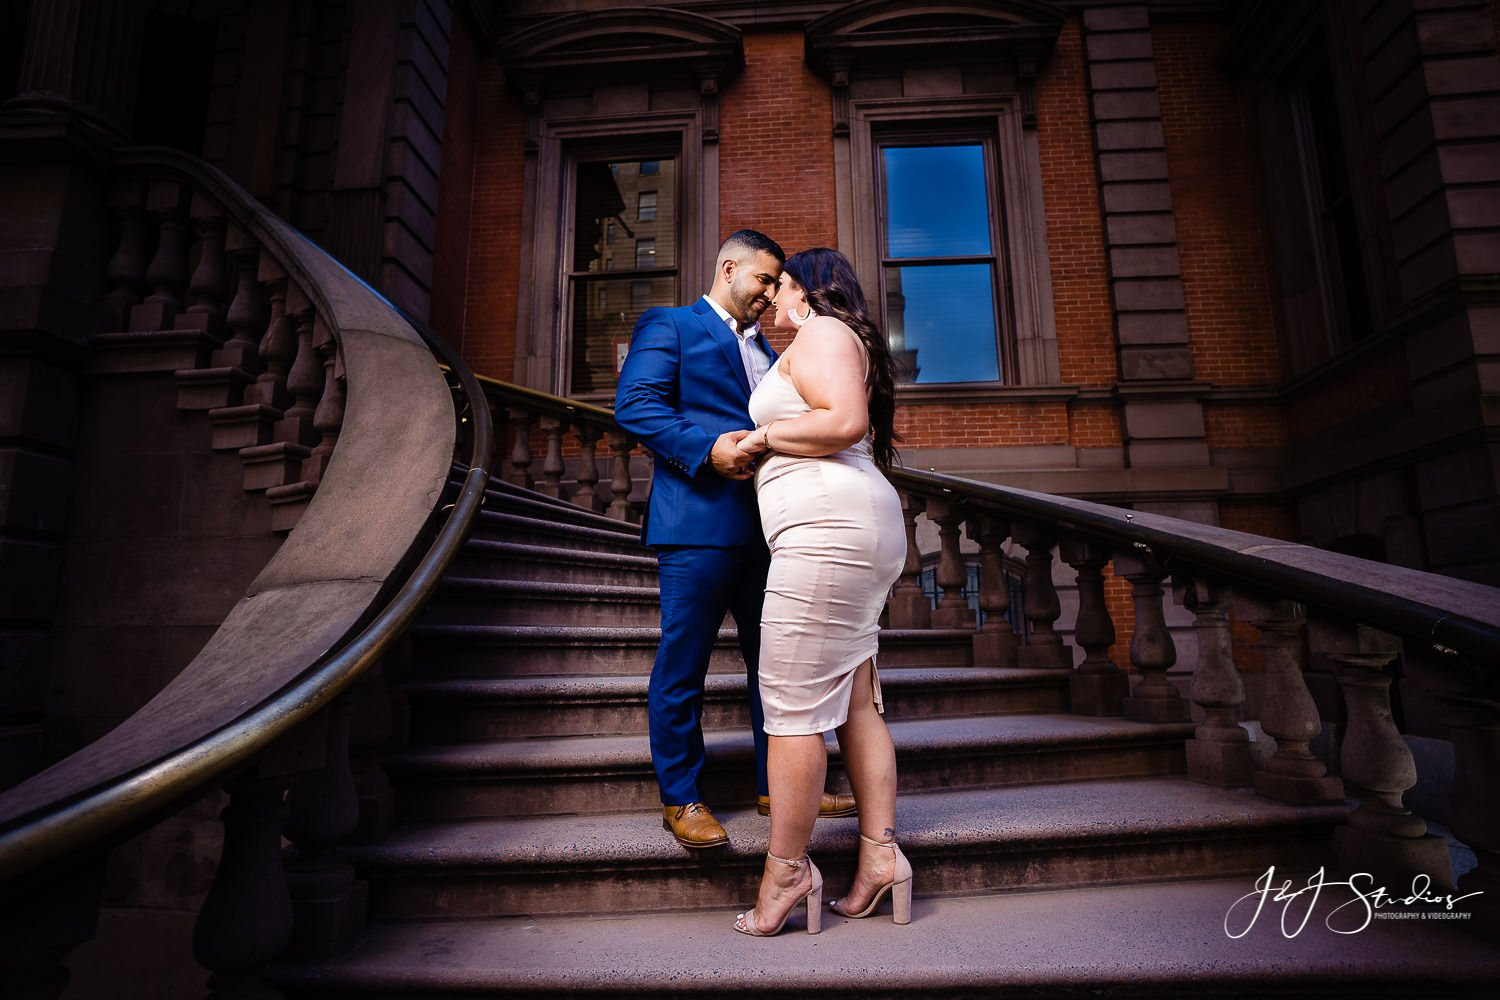 union league stairs engagement photo